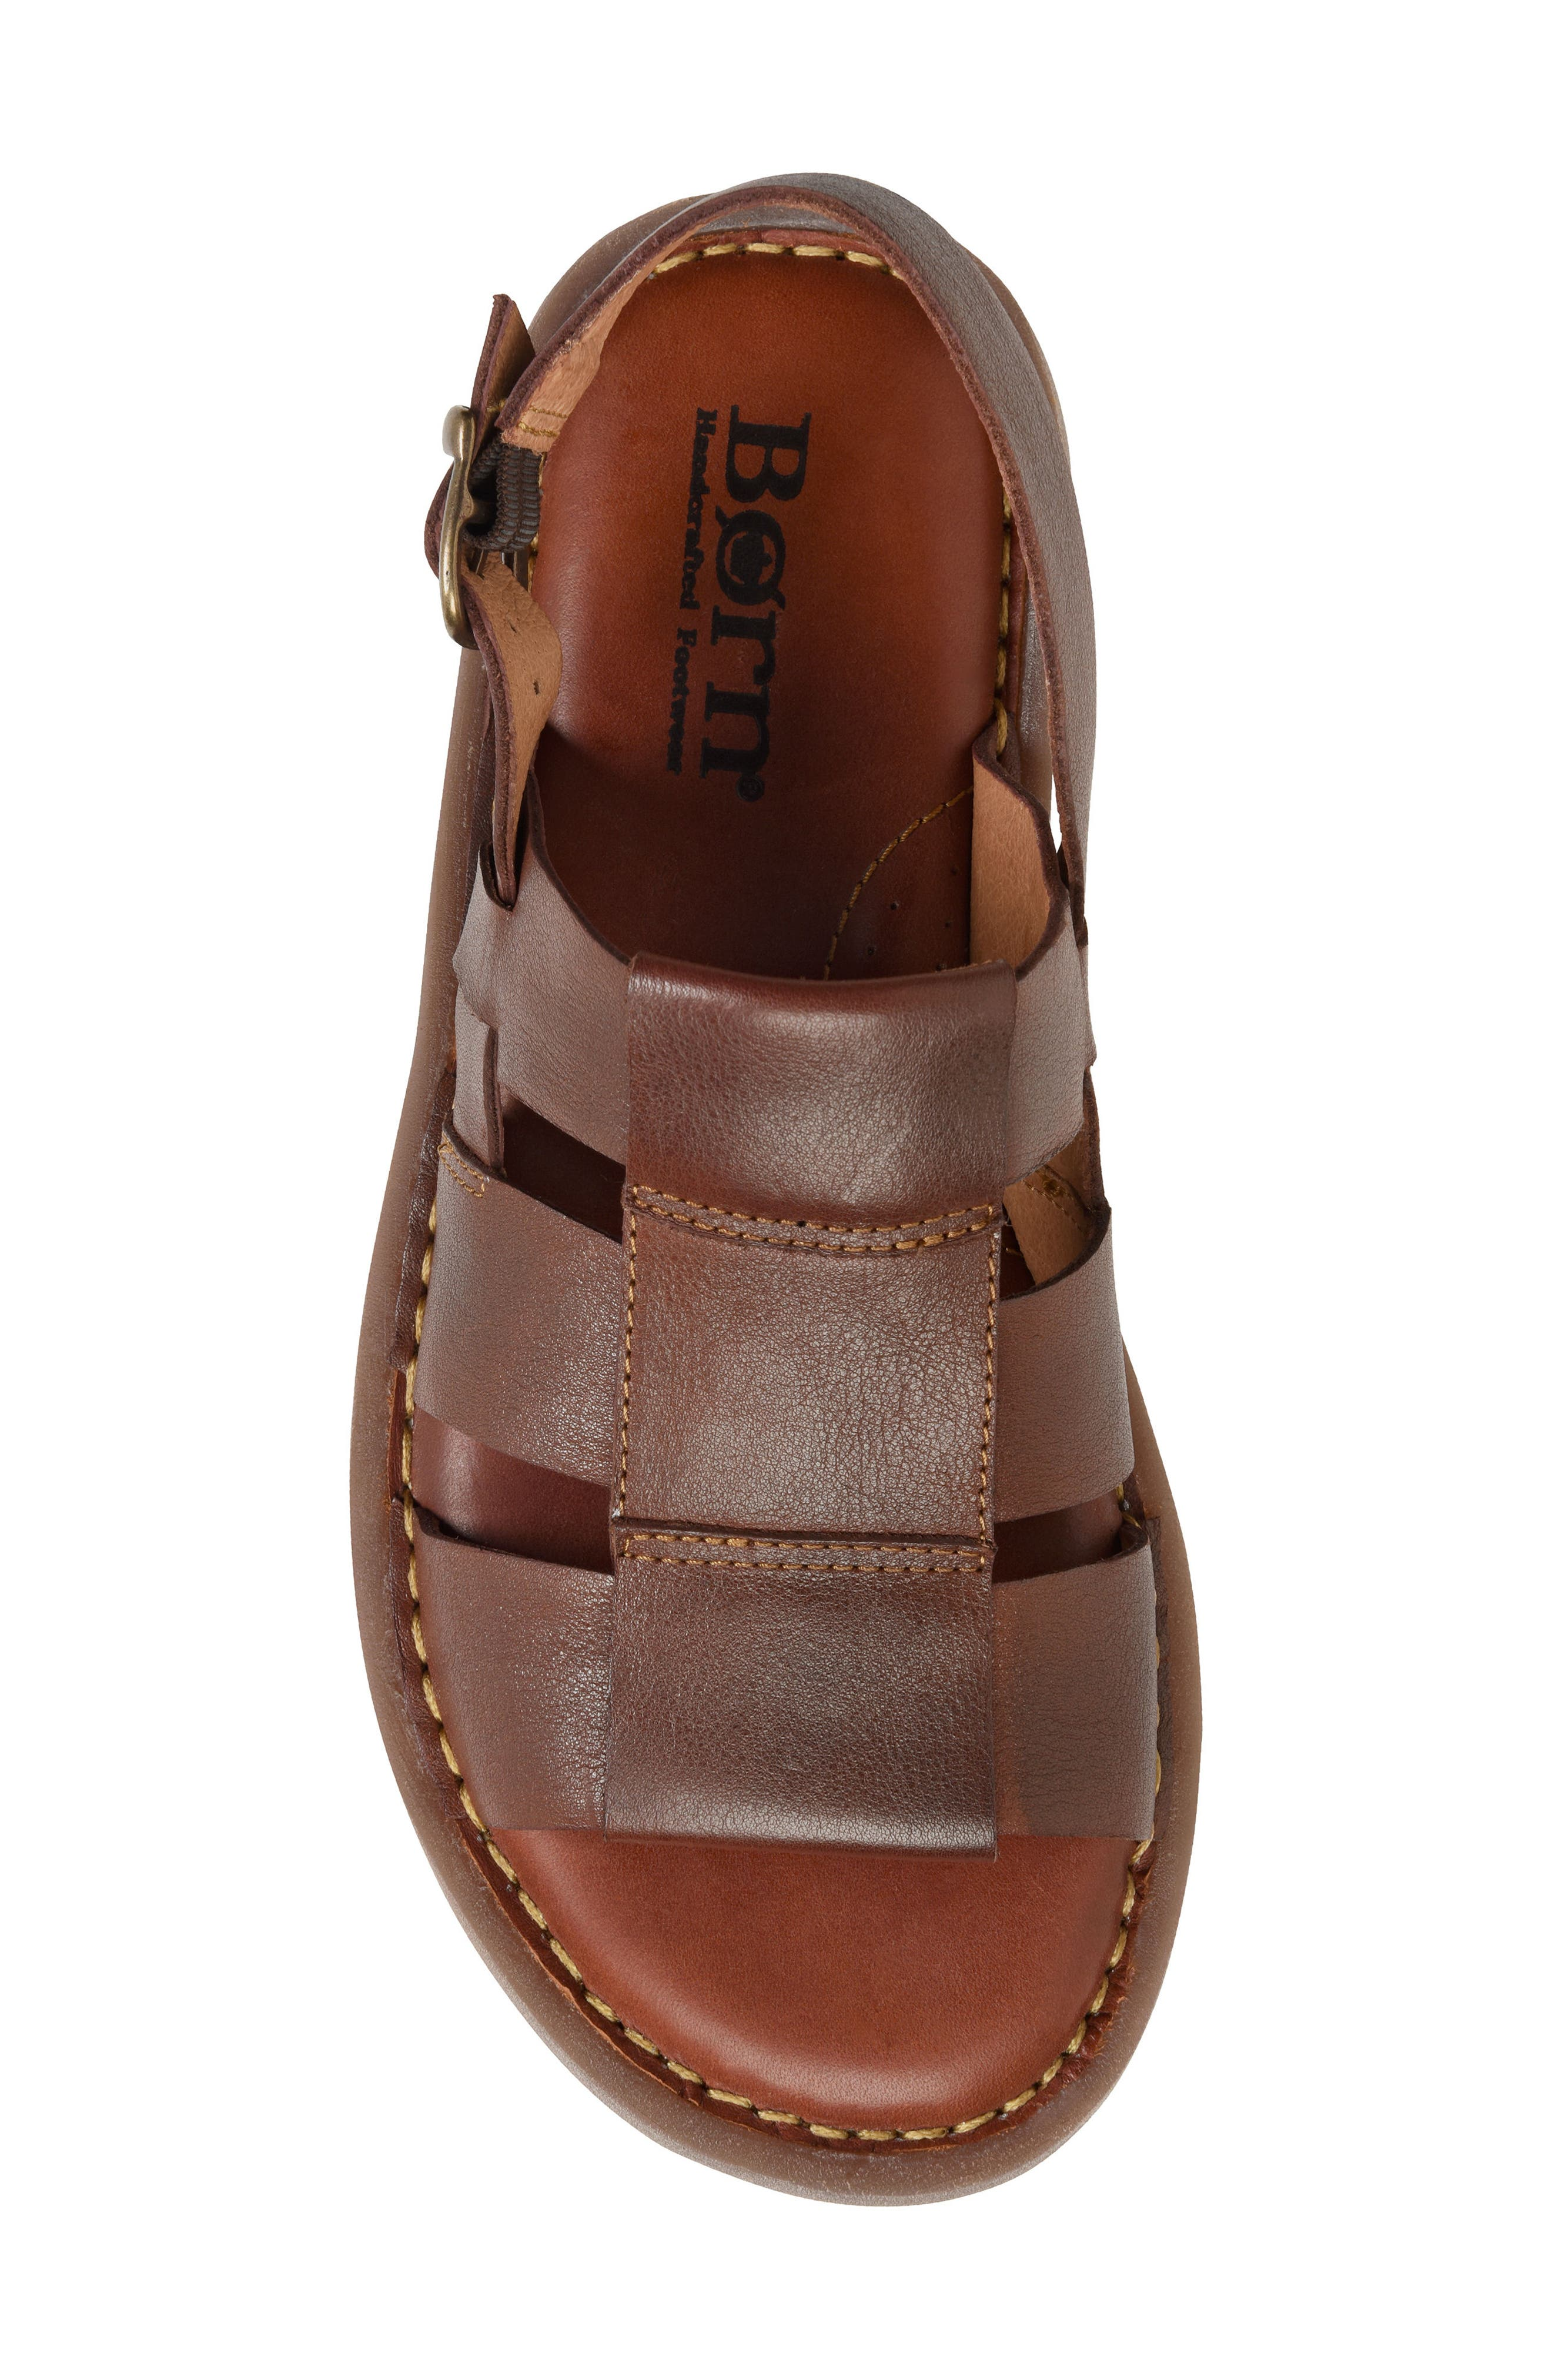 Surf Fisherman Sandal,                             Alternate thumbnail 5, color,                             BROWN LEATHER